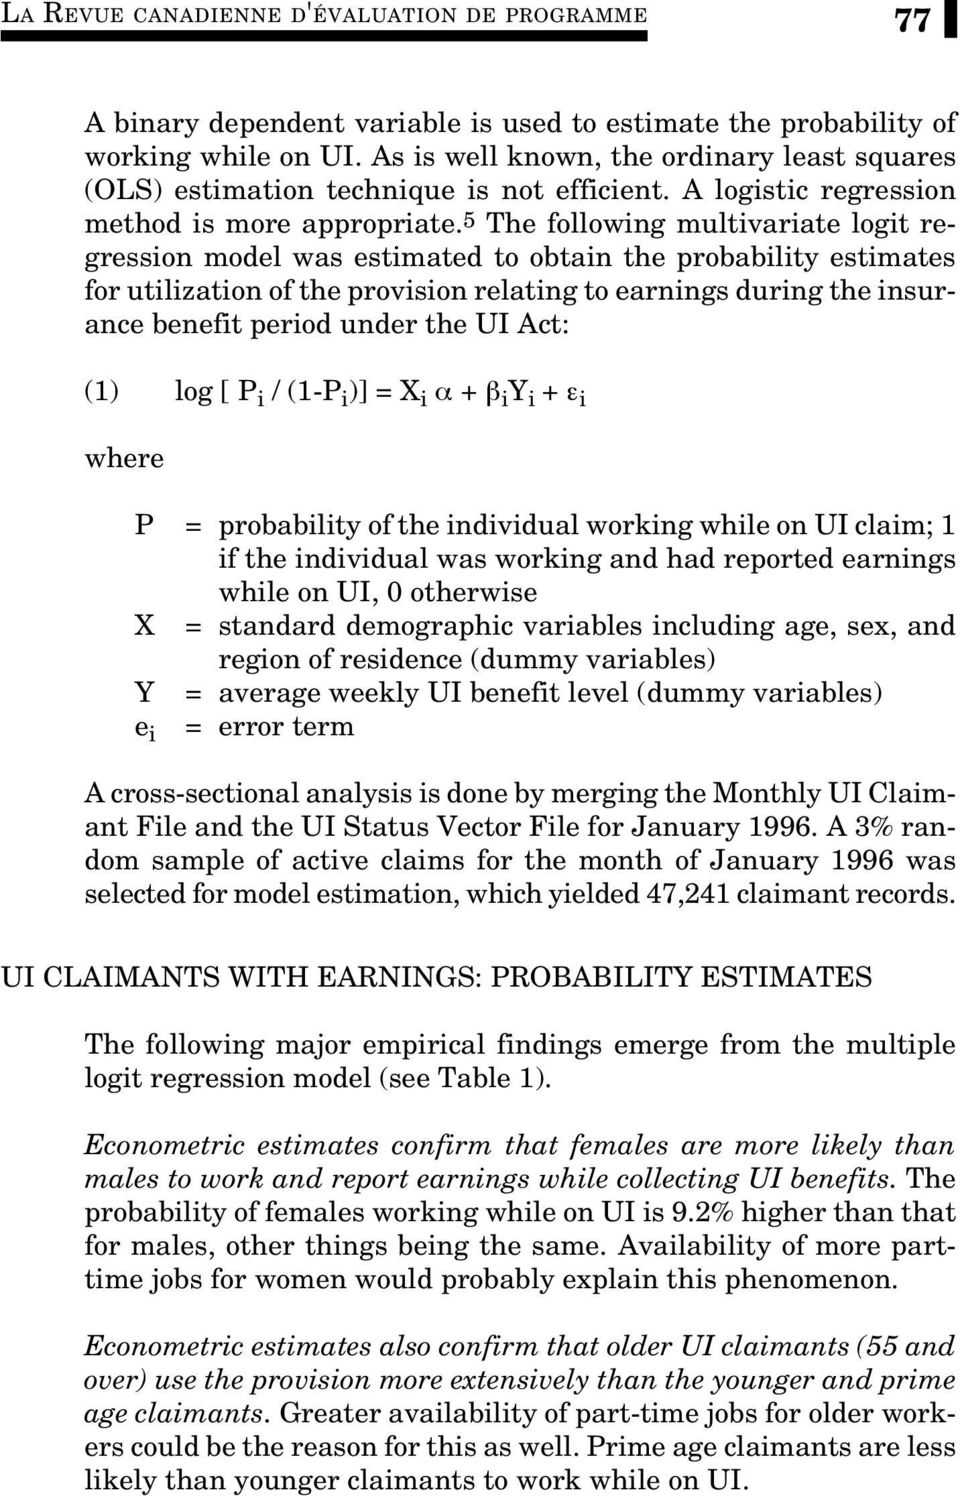 5 The following multivariate logit regression model was estimated to obtain the probability estimates for utilization of the provision relating to earnings during the insurance benefit period under